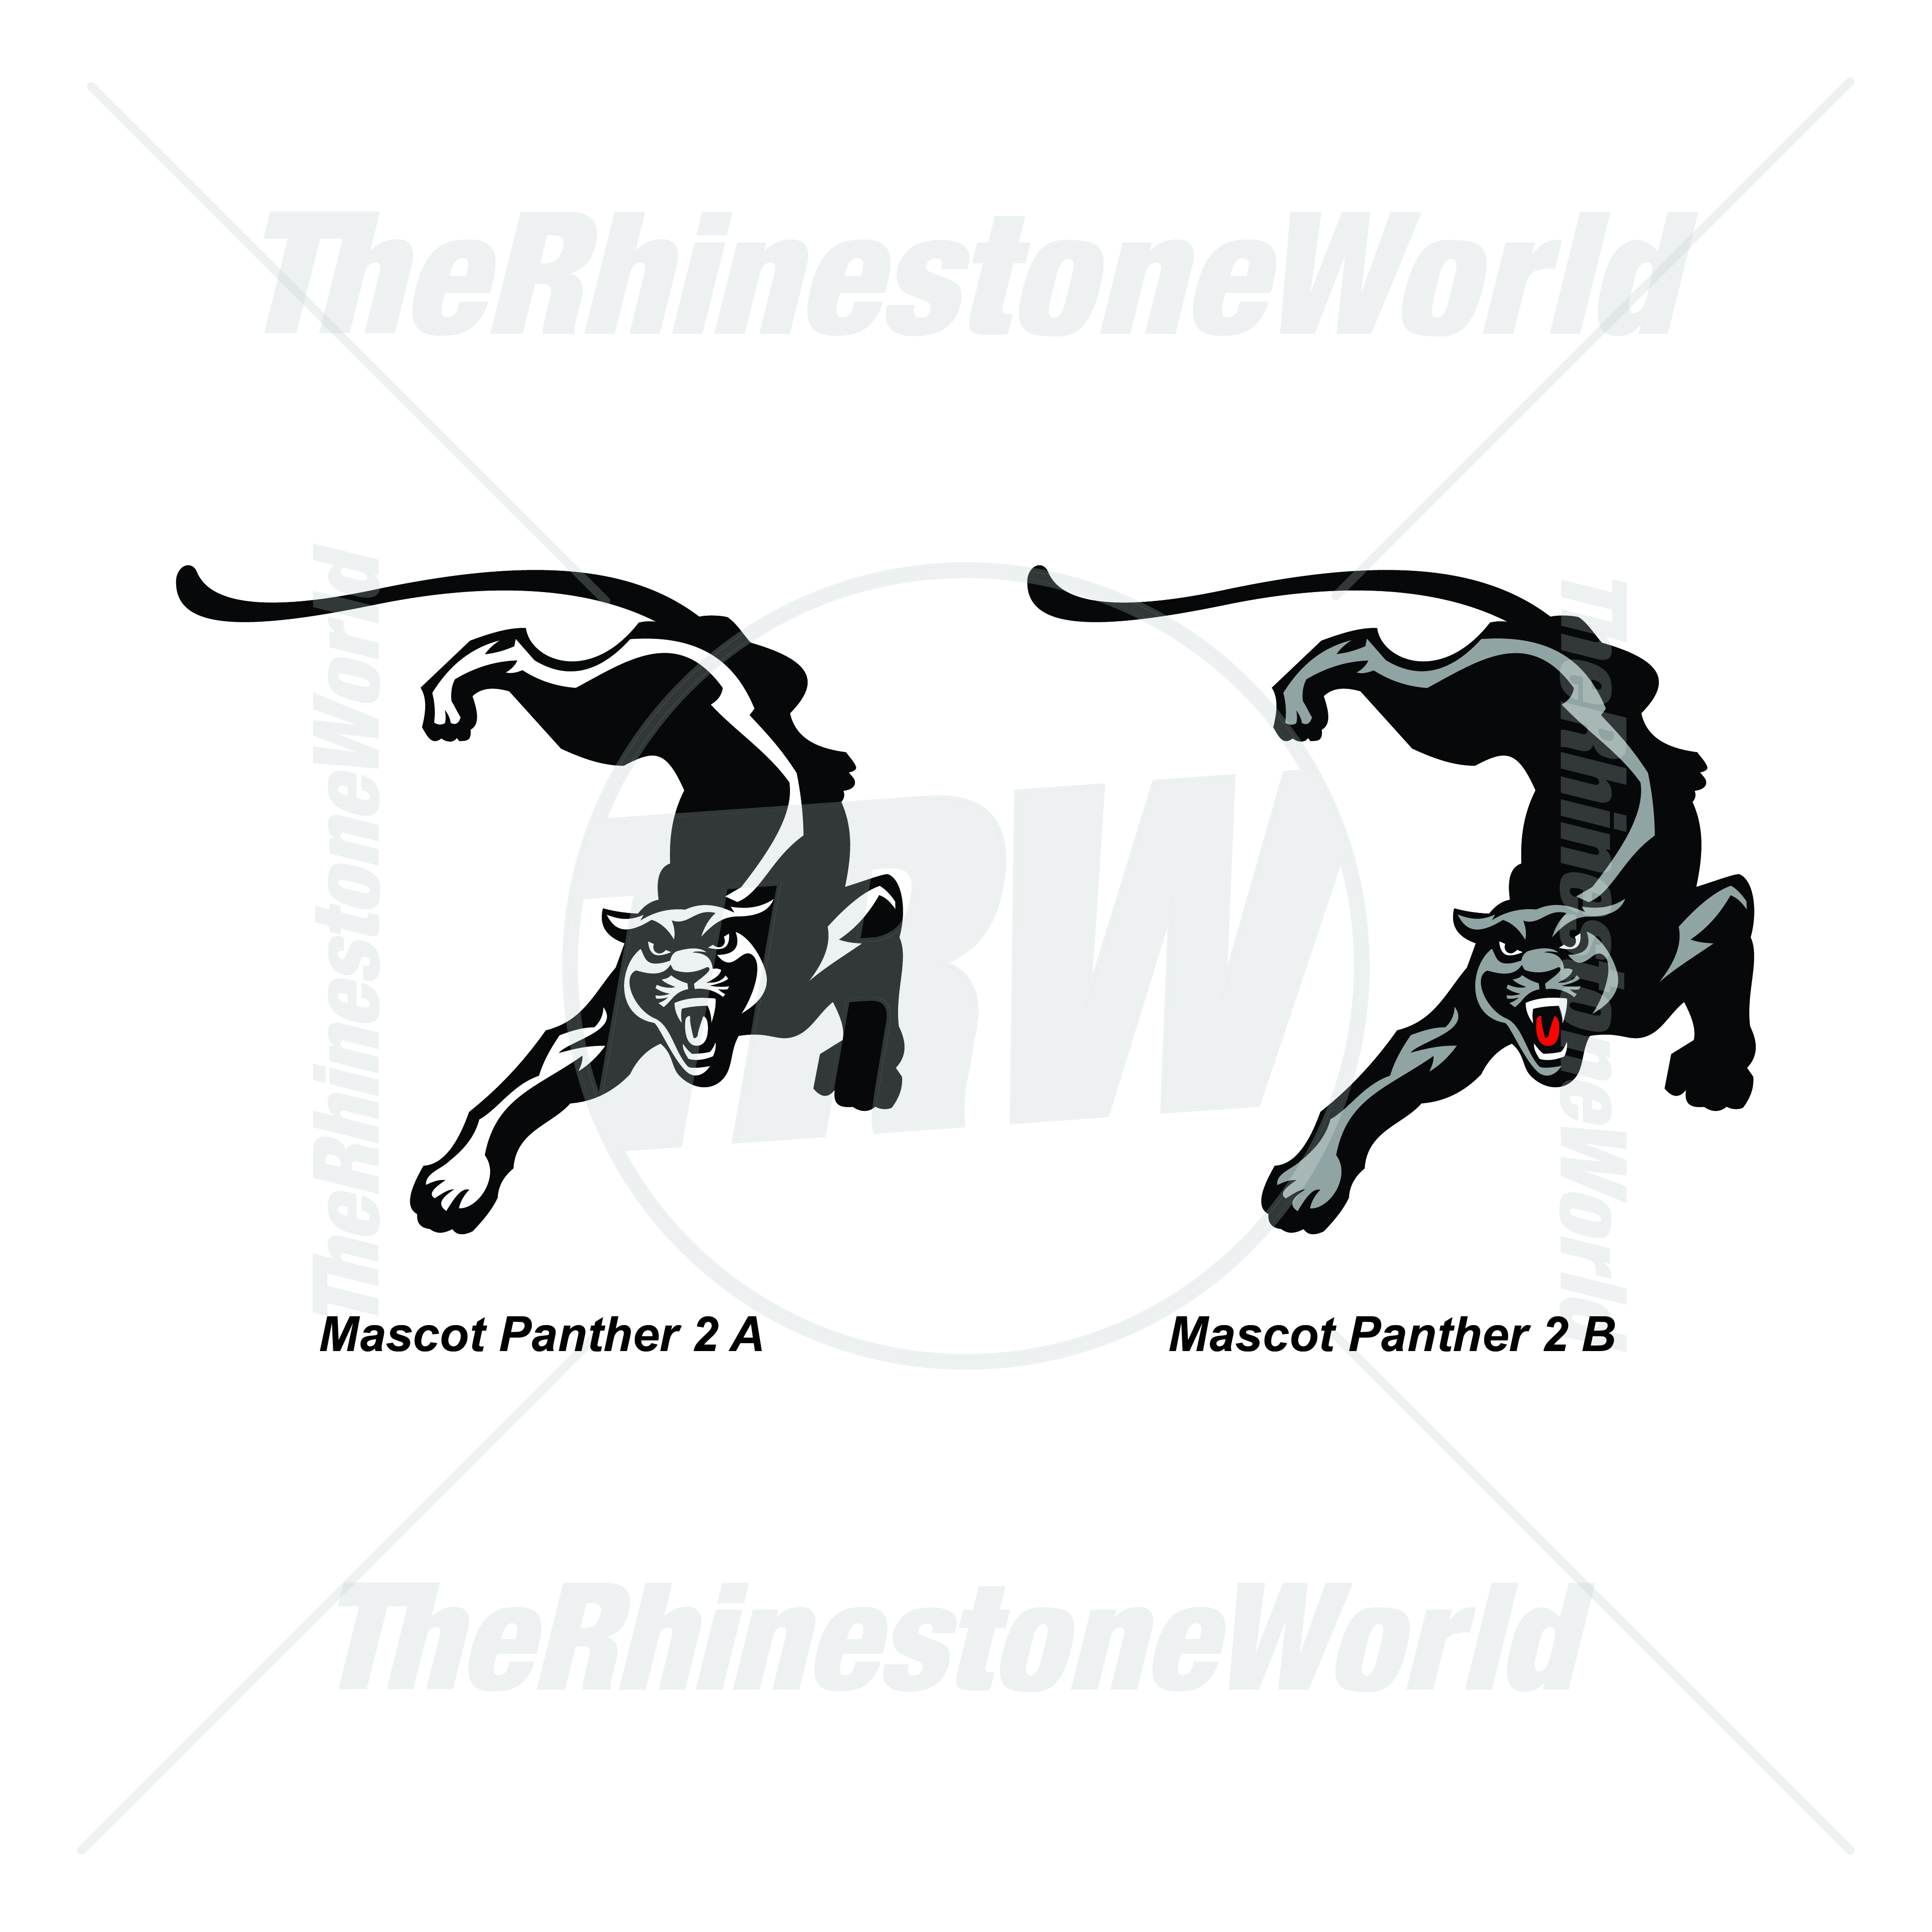 TRW MC Mascot Panther 2 - Download